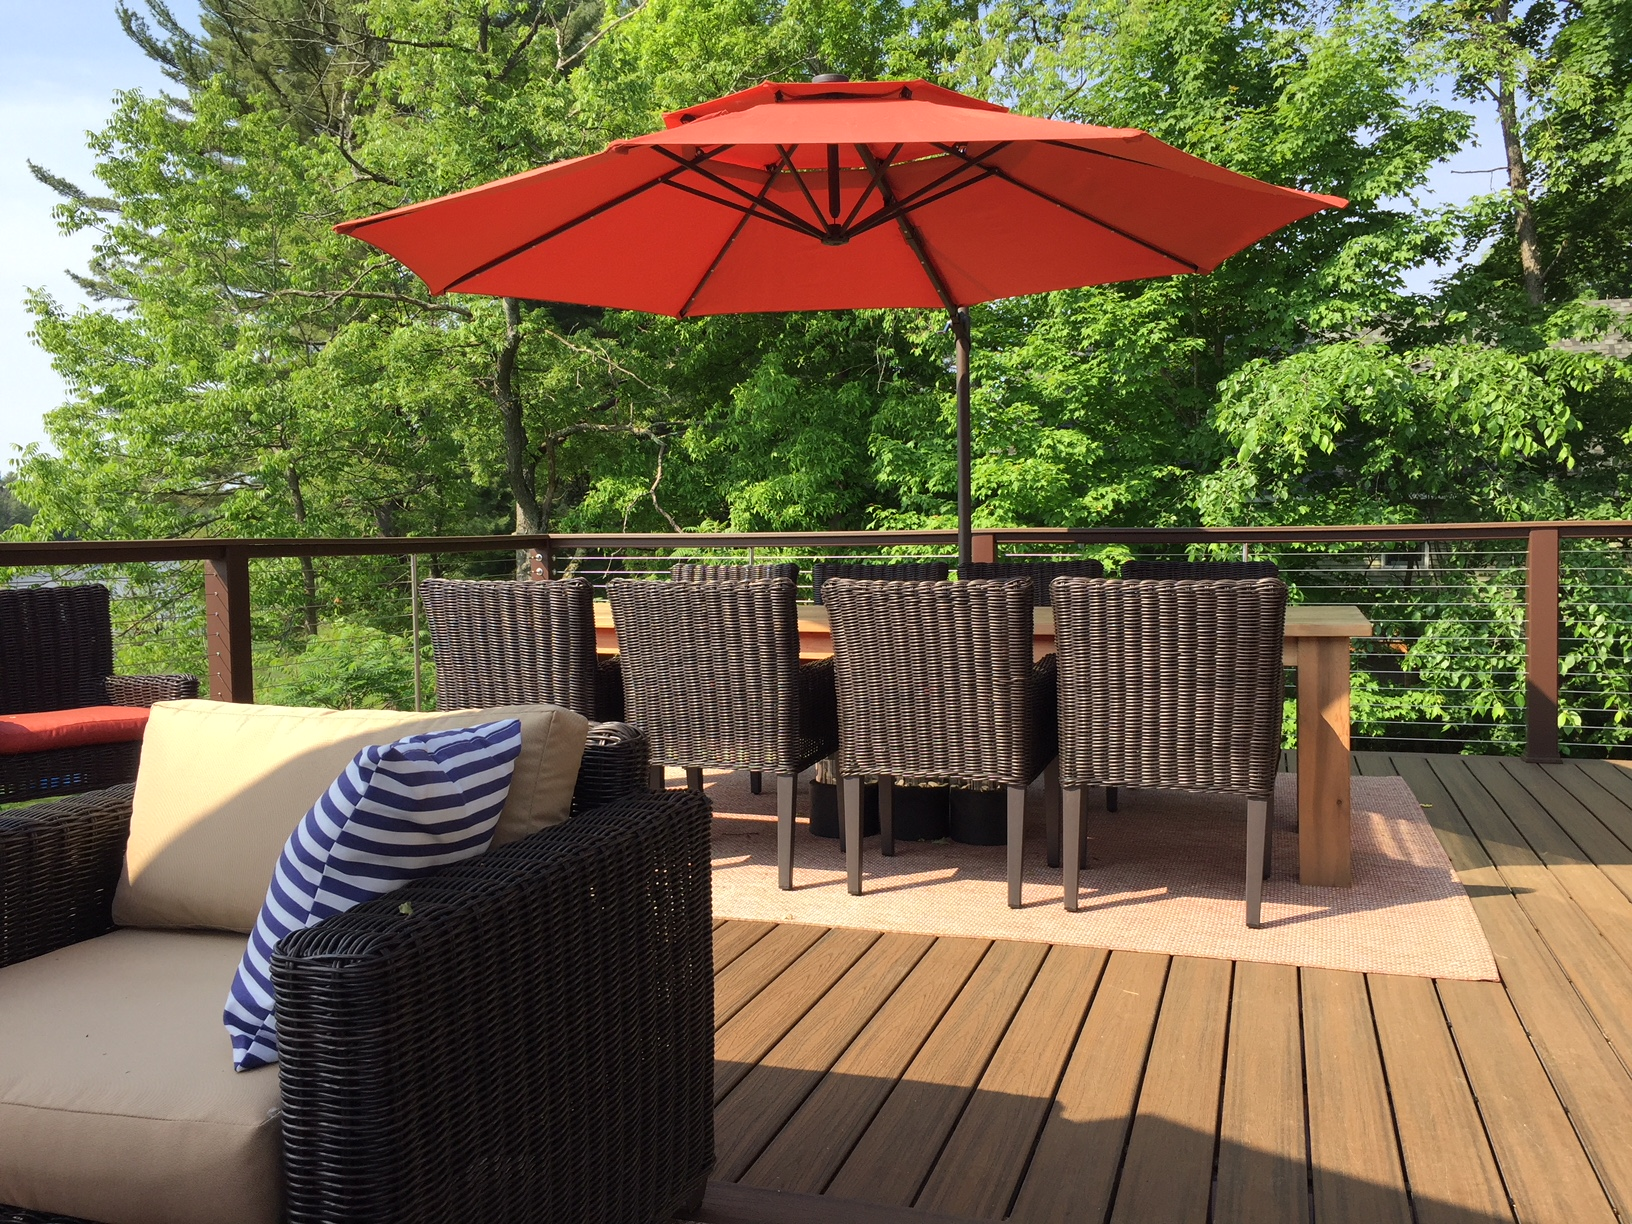 Outdoor Living | Patriot Construction of Upstate New York ... on Patriot Outdoor Living id=11308